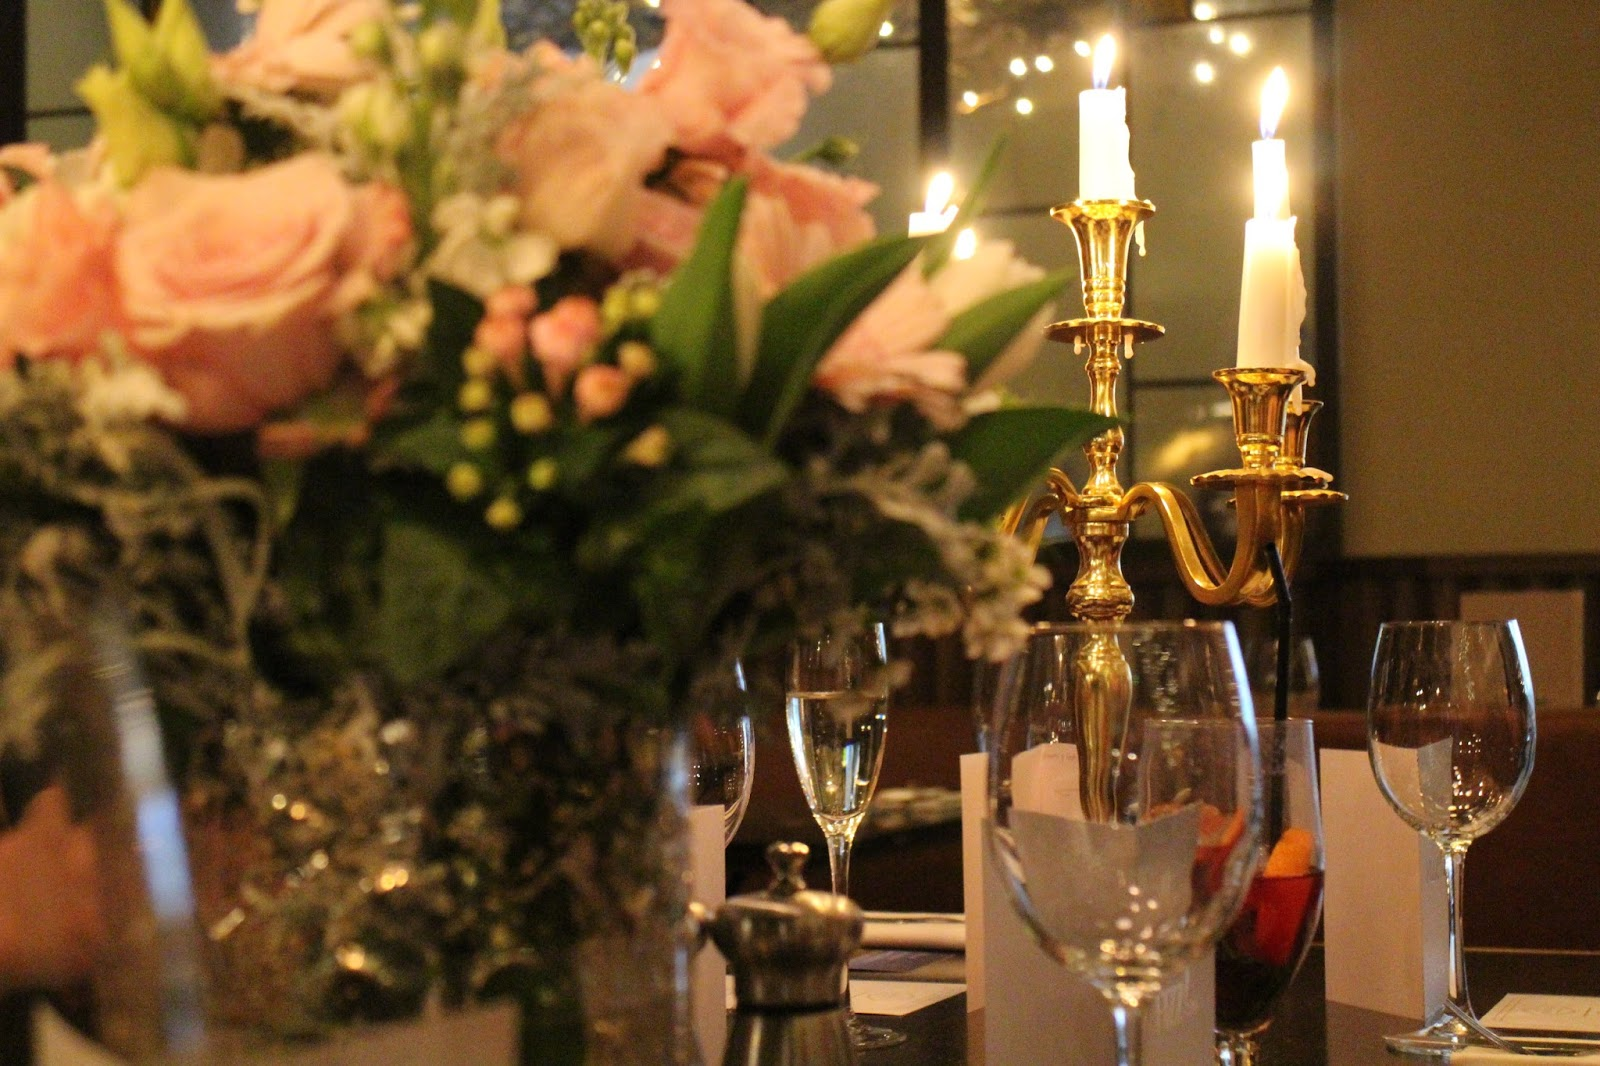 Candelabra restaurant set-up at Gusto, Leeds | The Dress Diaries